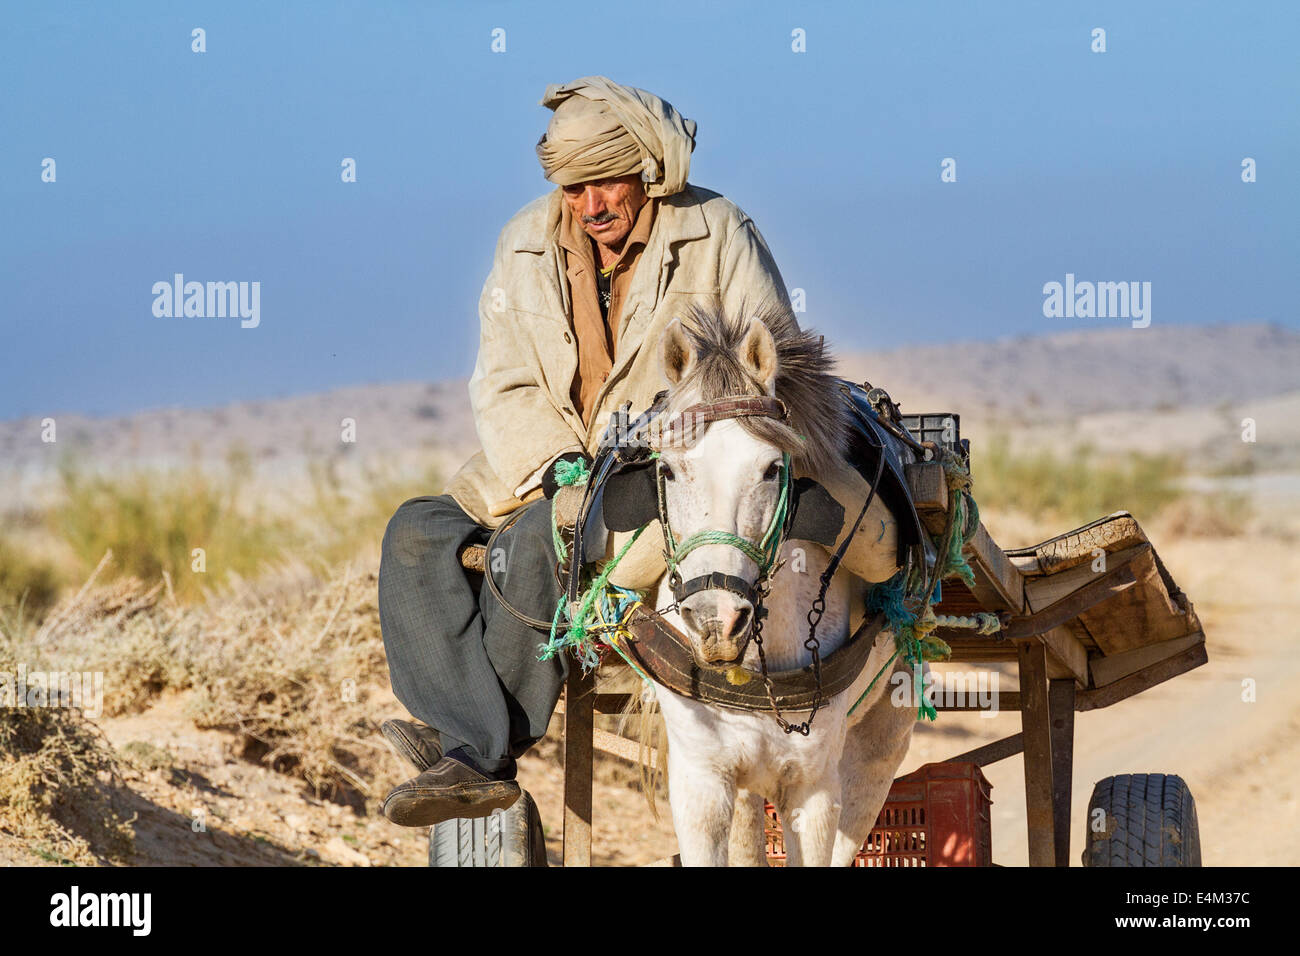 Traditional transportation in the desert south of Tozeur - Stock Image